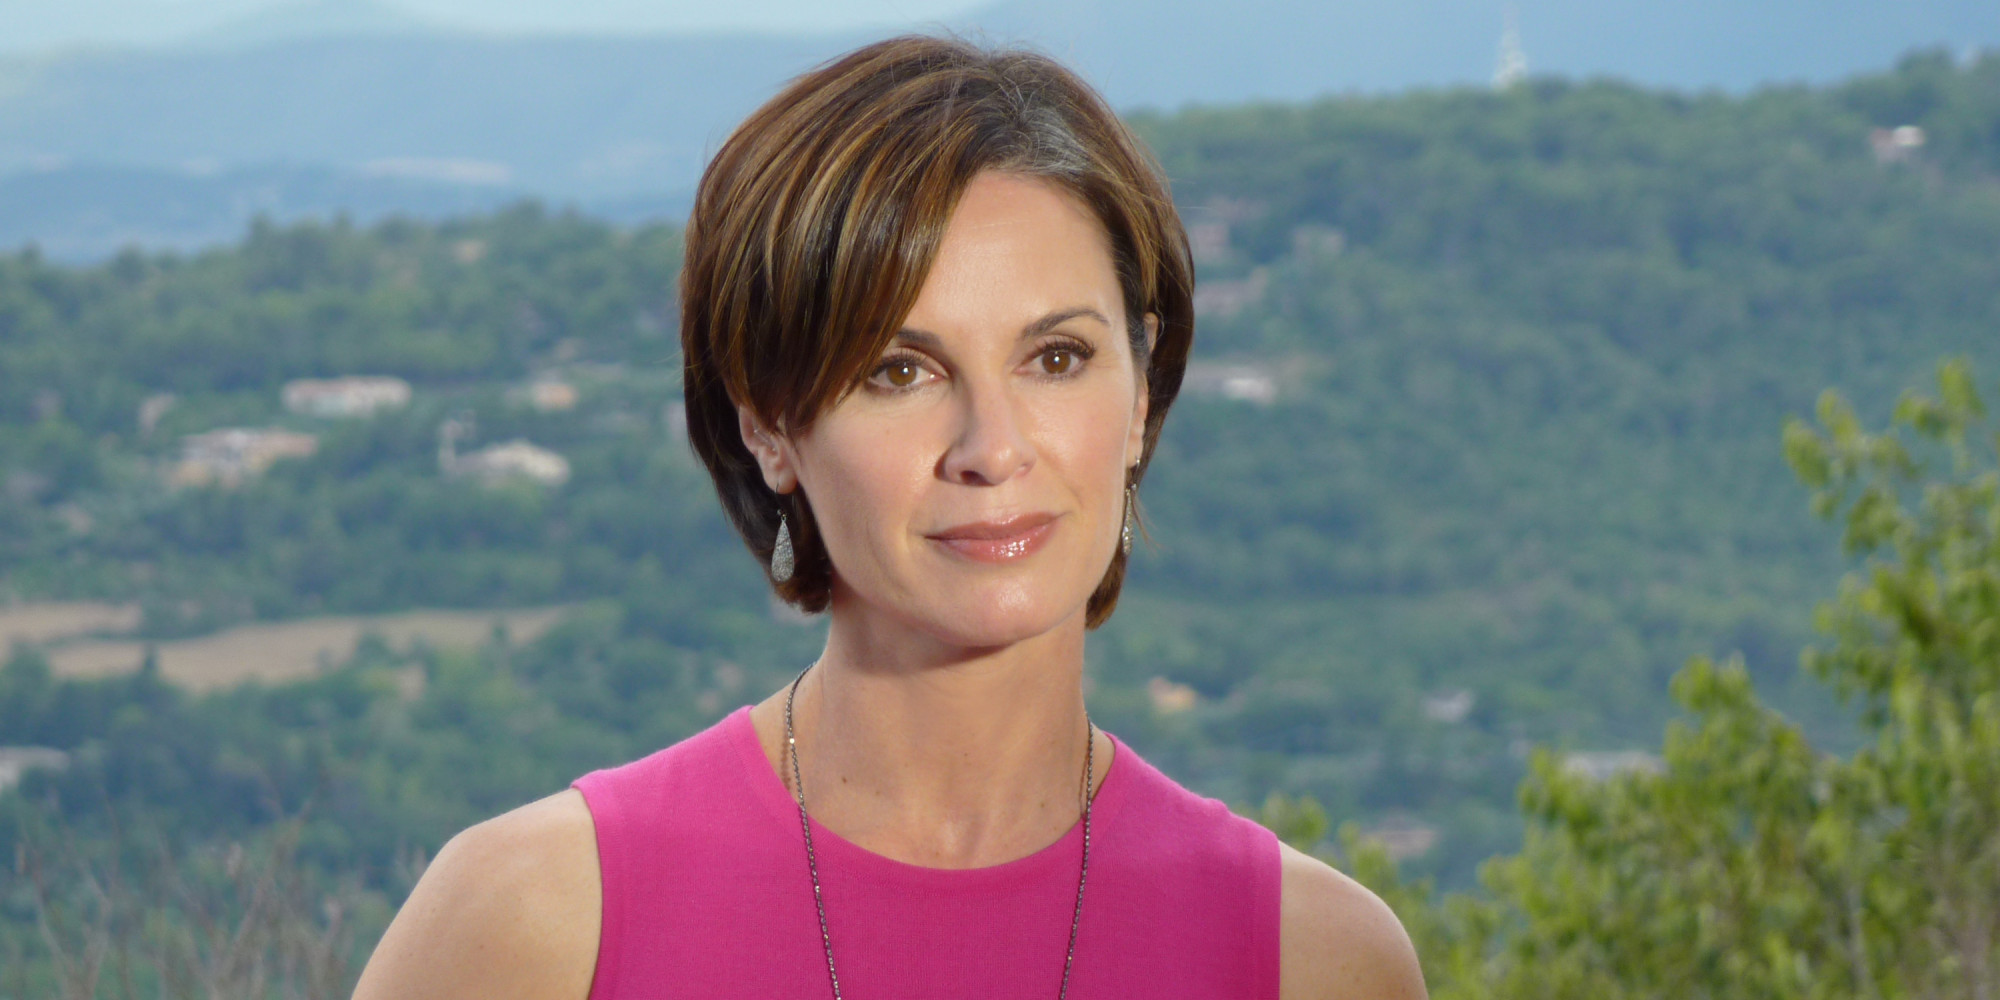 elizabeth vargas. last friday, in an interview with george stephanopoulos, elizabeth vargas openly shared her struggle alcoholism. the interview, which aired on good